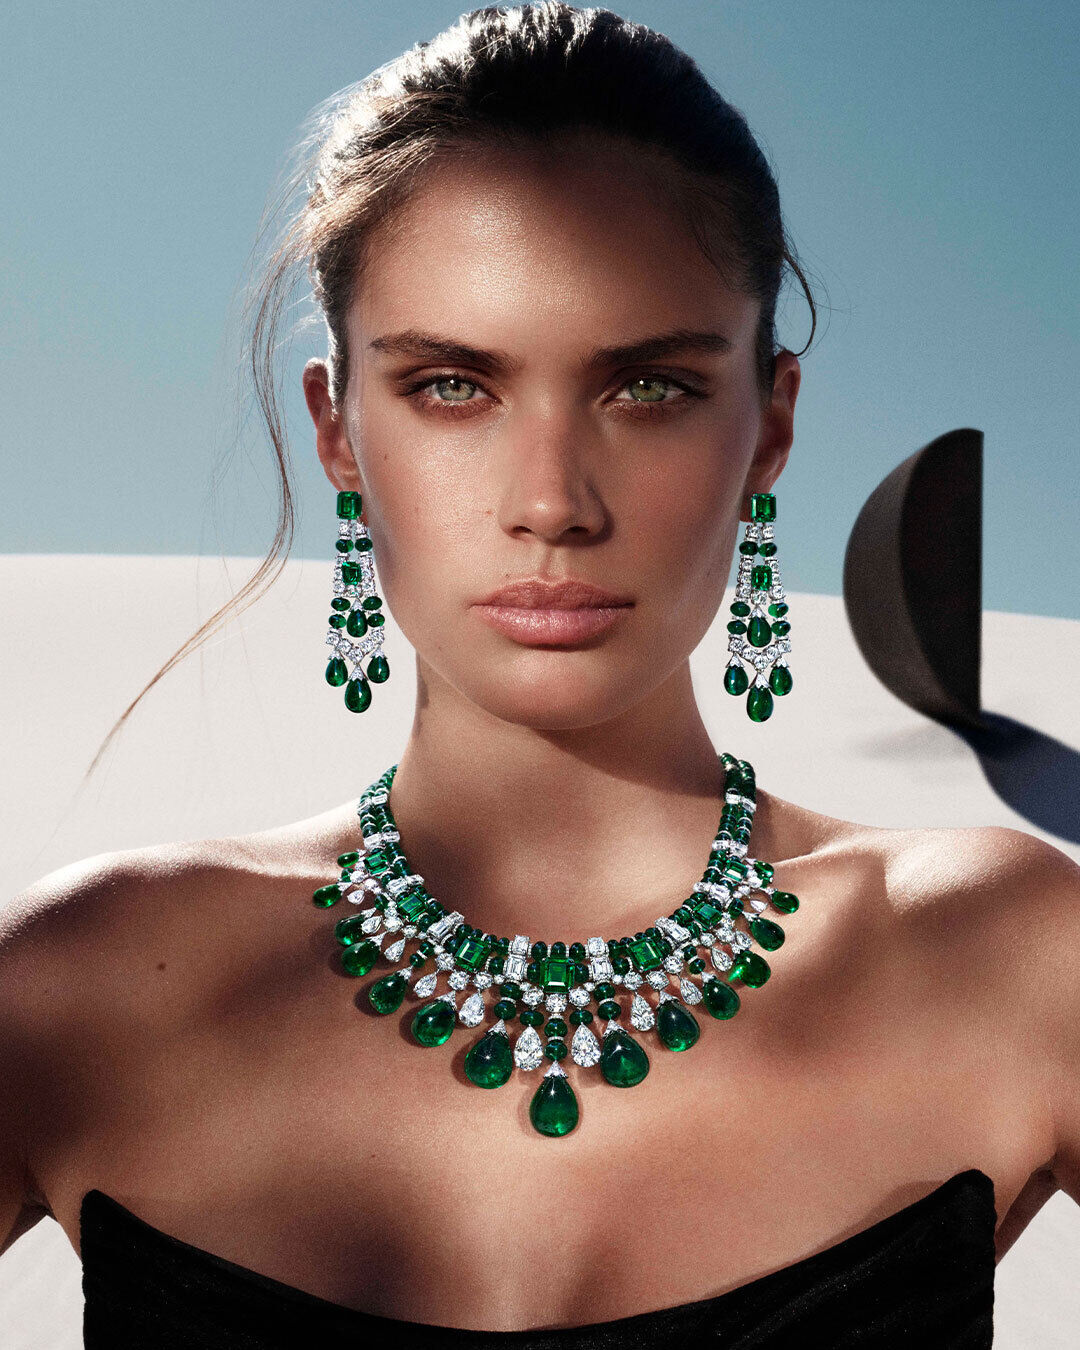 Sara Sampaio wears the Graff Tribal collection emerald and diamond high jewellery earrings and necklace, in a desert in front of the black sculpture